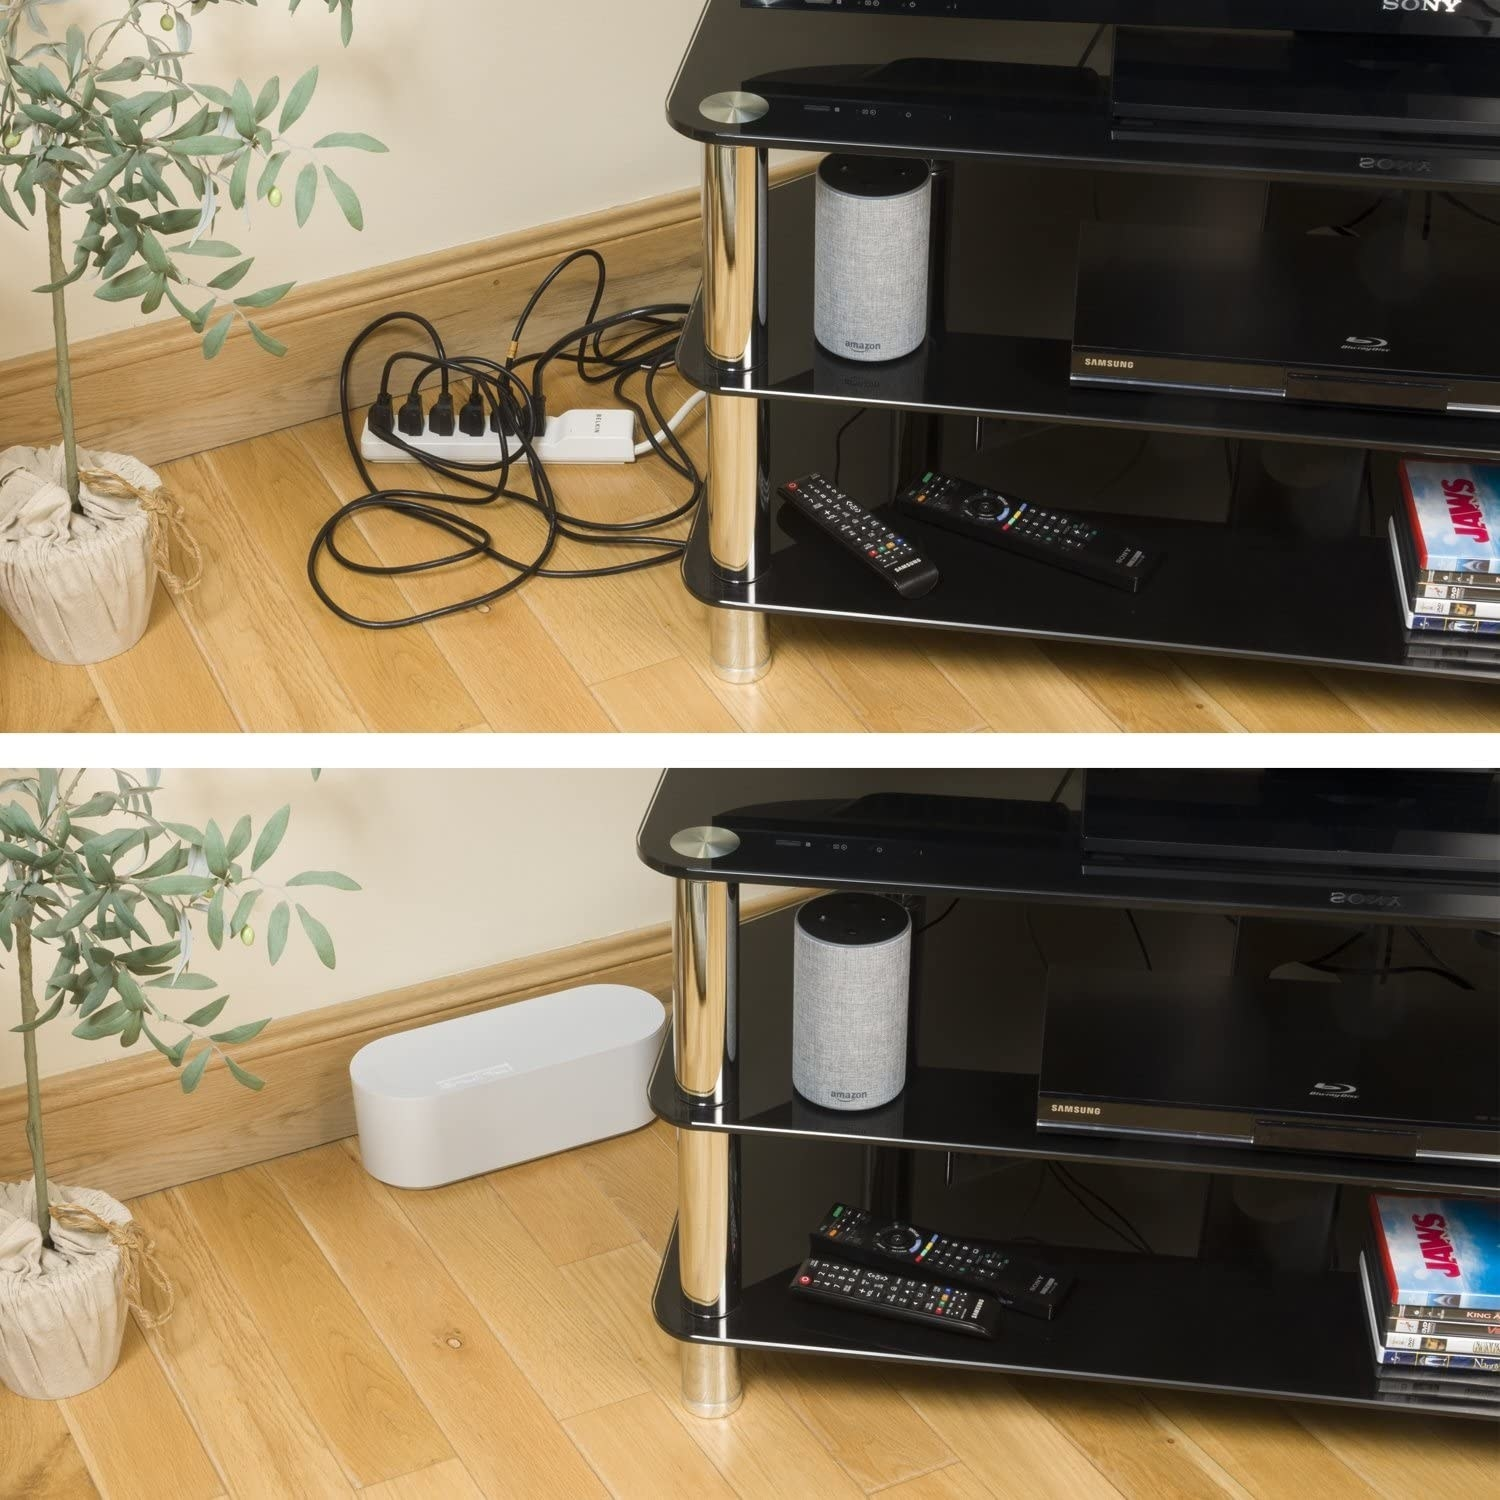 A before image of a bunch of cords plugged into a power bar next to a television stand and an after image of the cords inside a small rectangular box